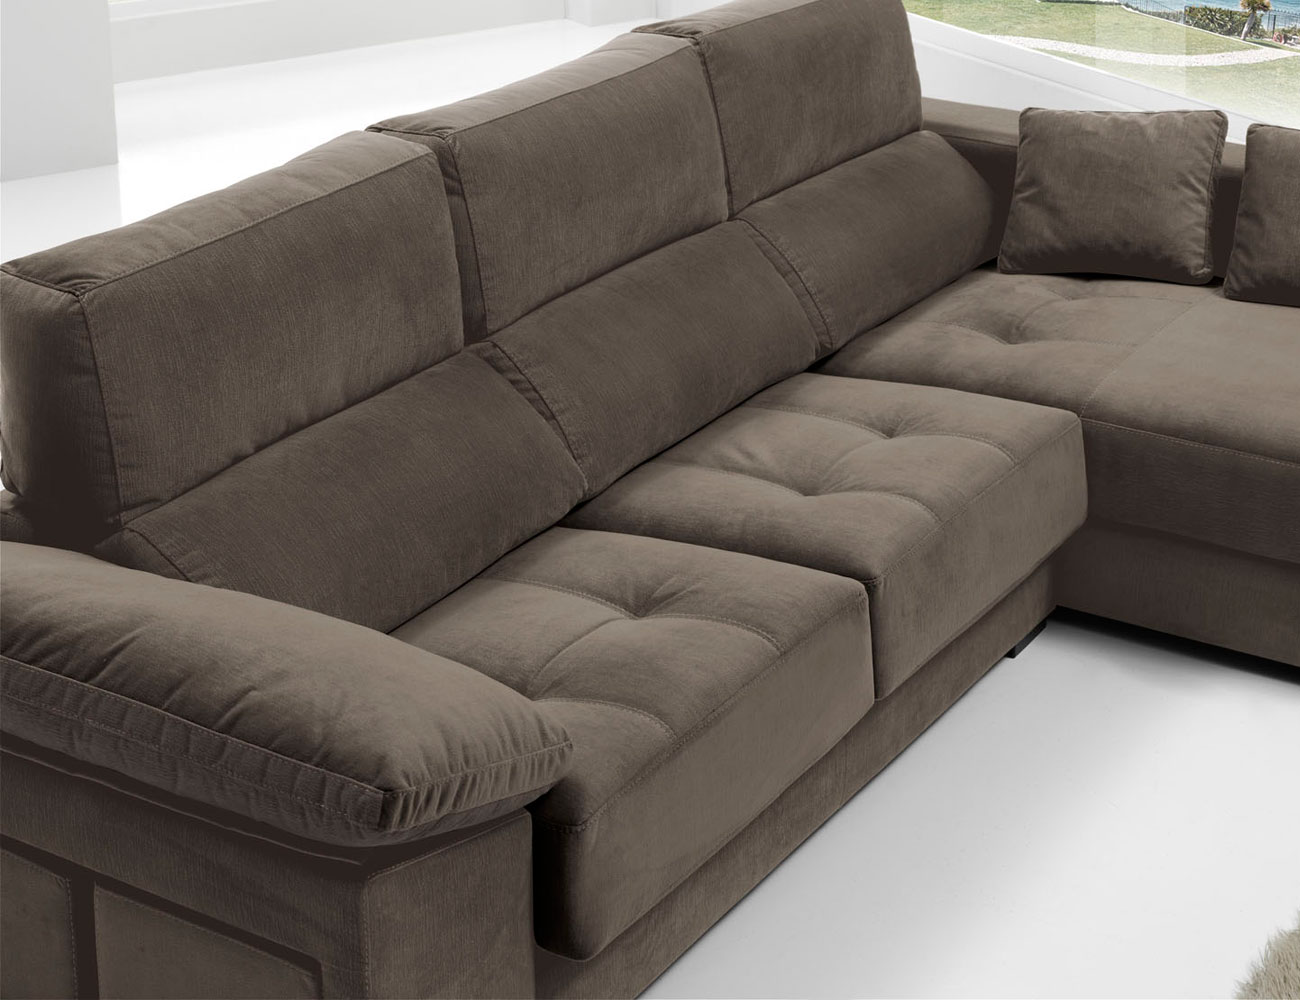 Sofa chaiselongue anti manchas bering pouf 284